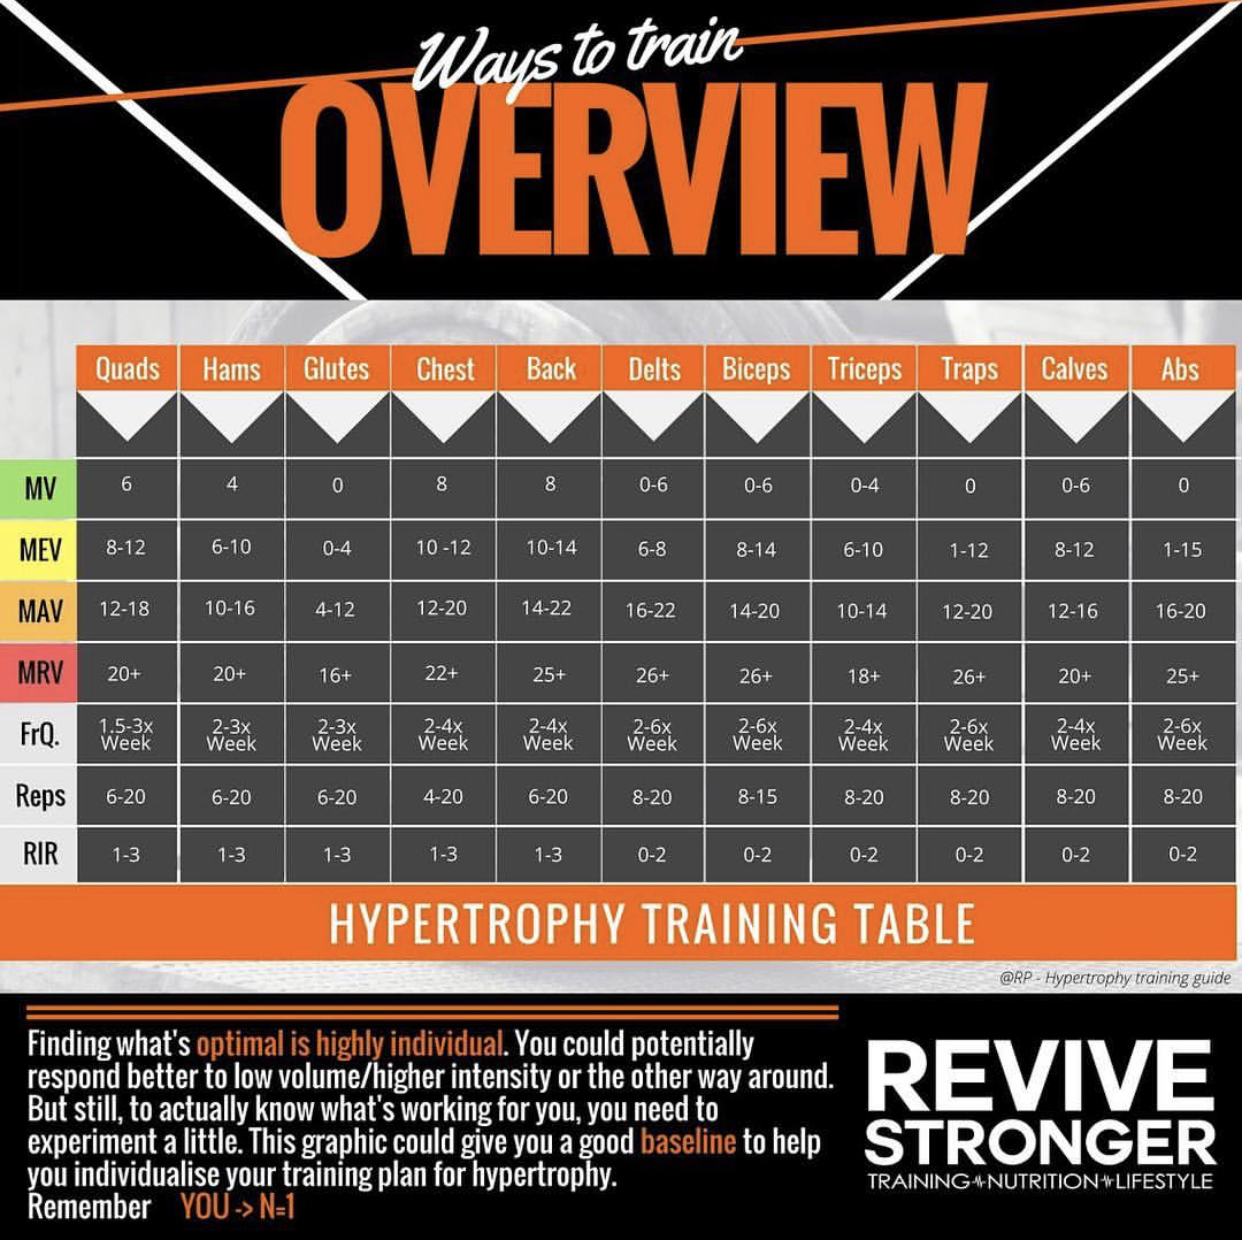 The sets listed are averages that take into consideration overlapping muscle groups, i.e., triceps and front delts being hit during bench press.